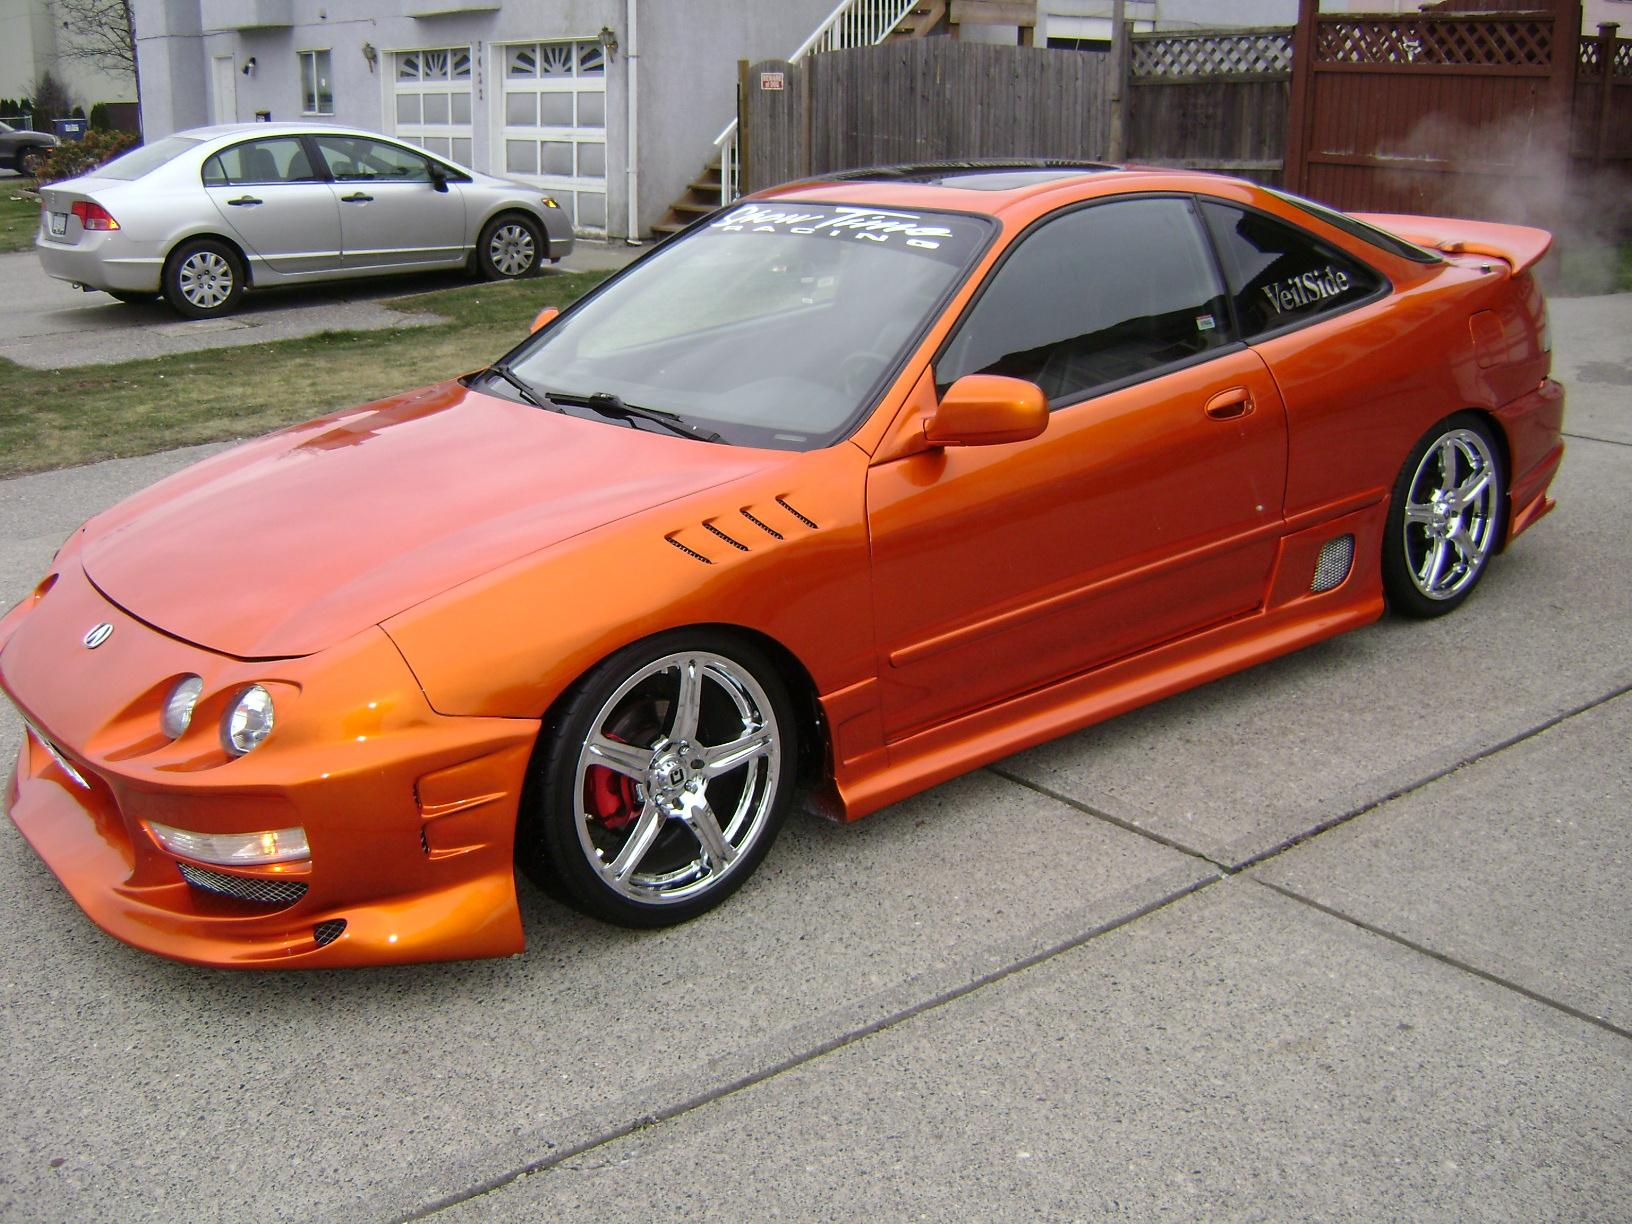 Acura Integra 2000: Review, Amazing Pictures and Images – Look at